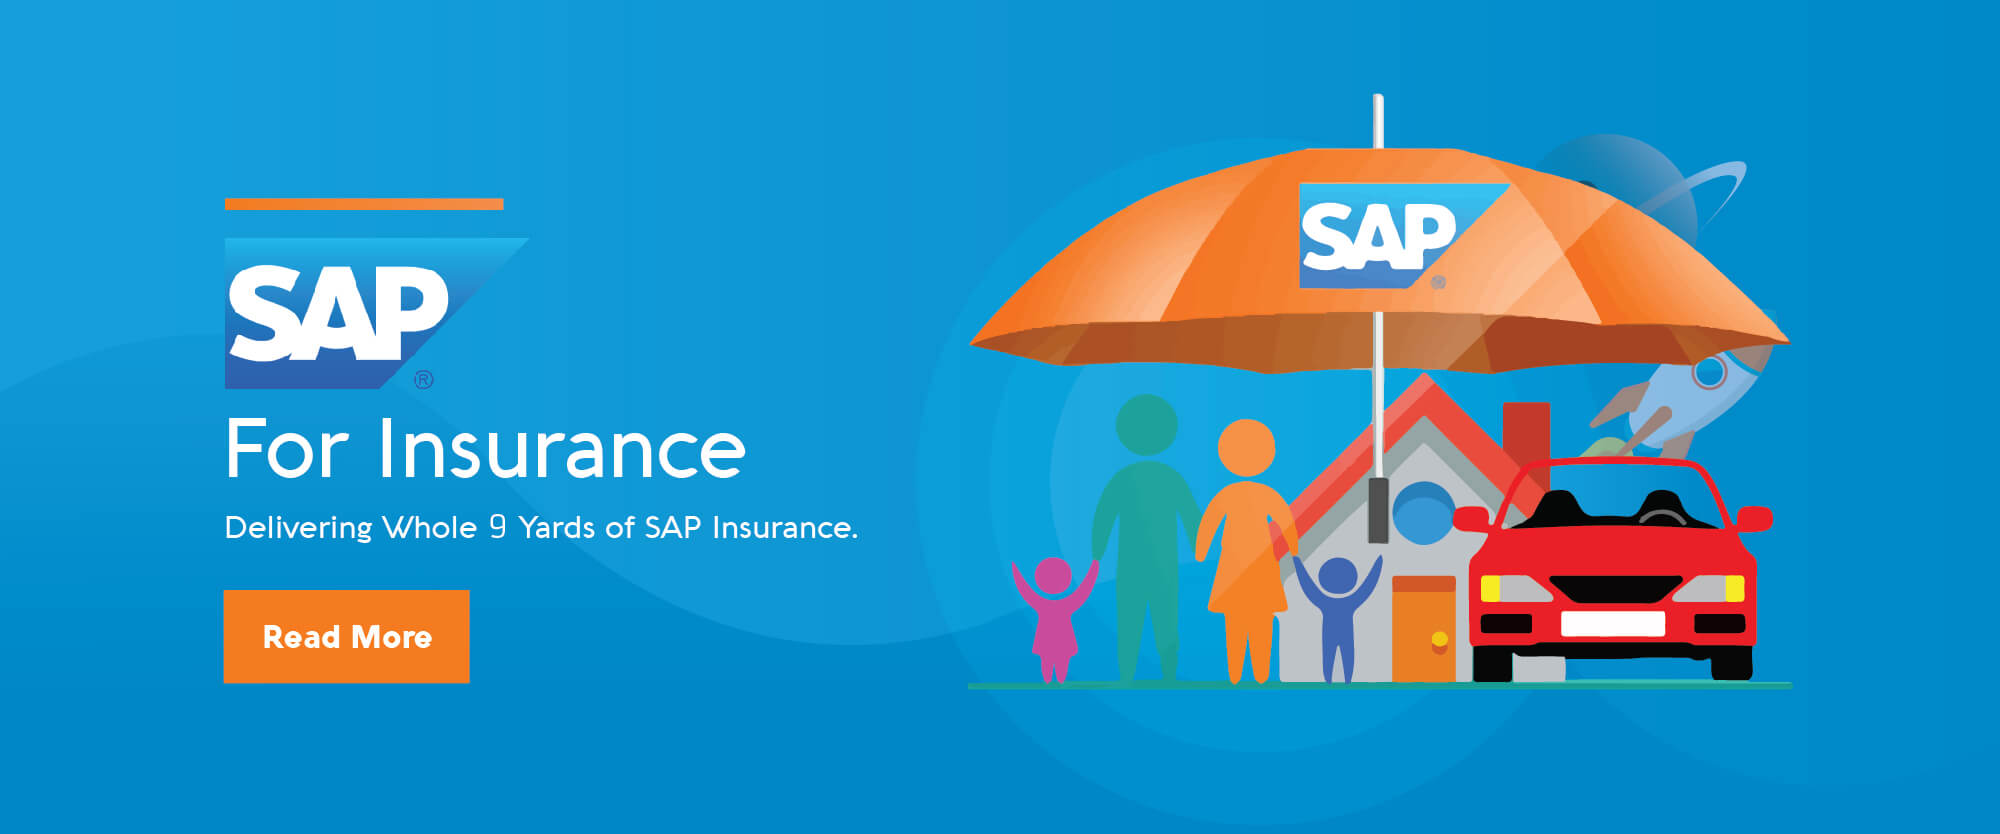 Serole technologies provide sap for insurance